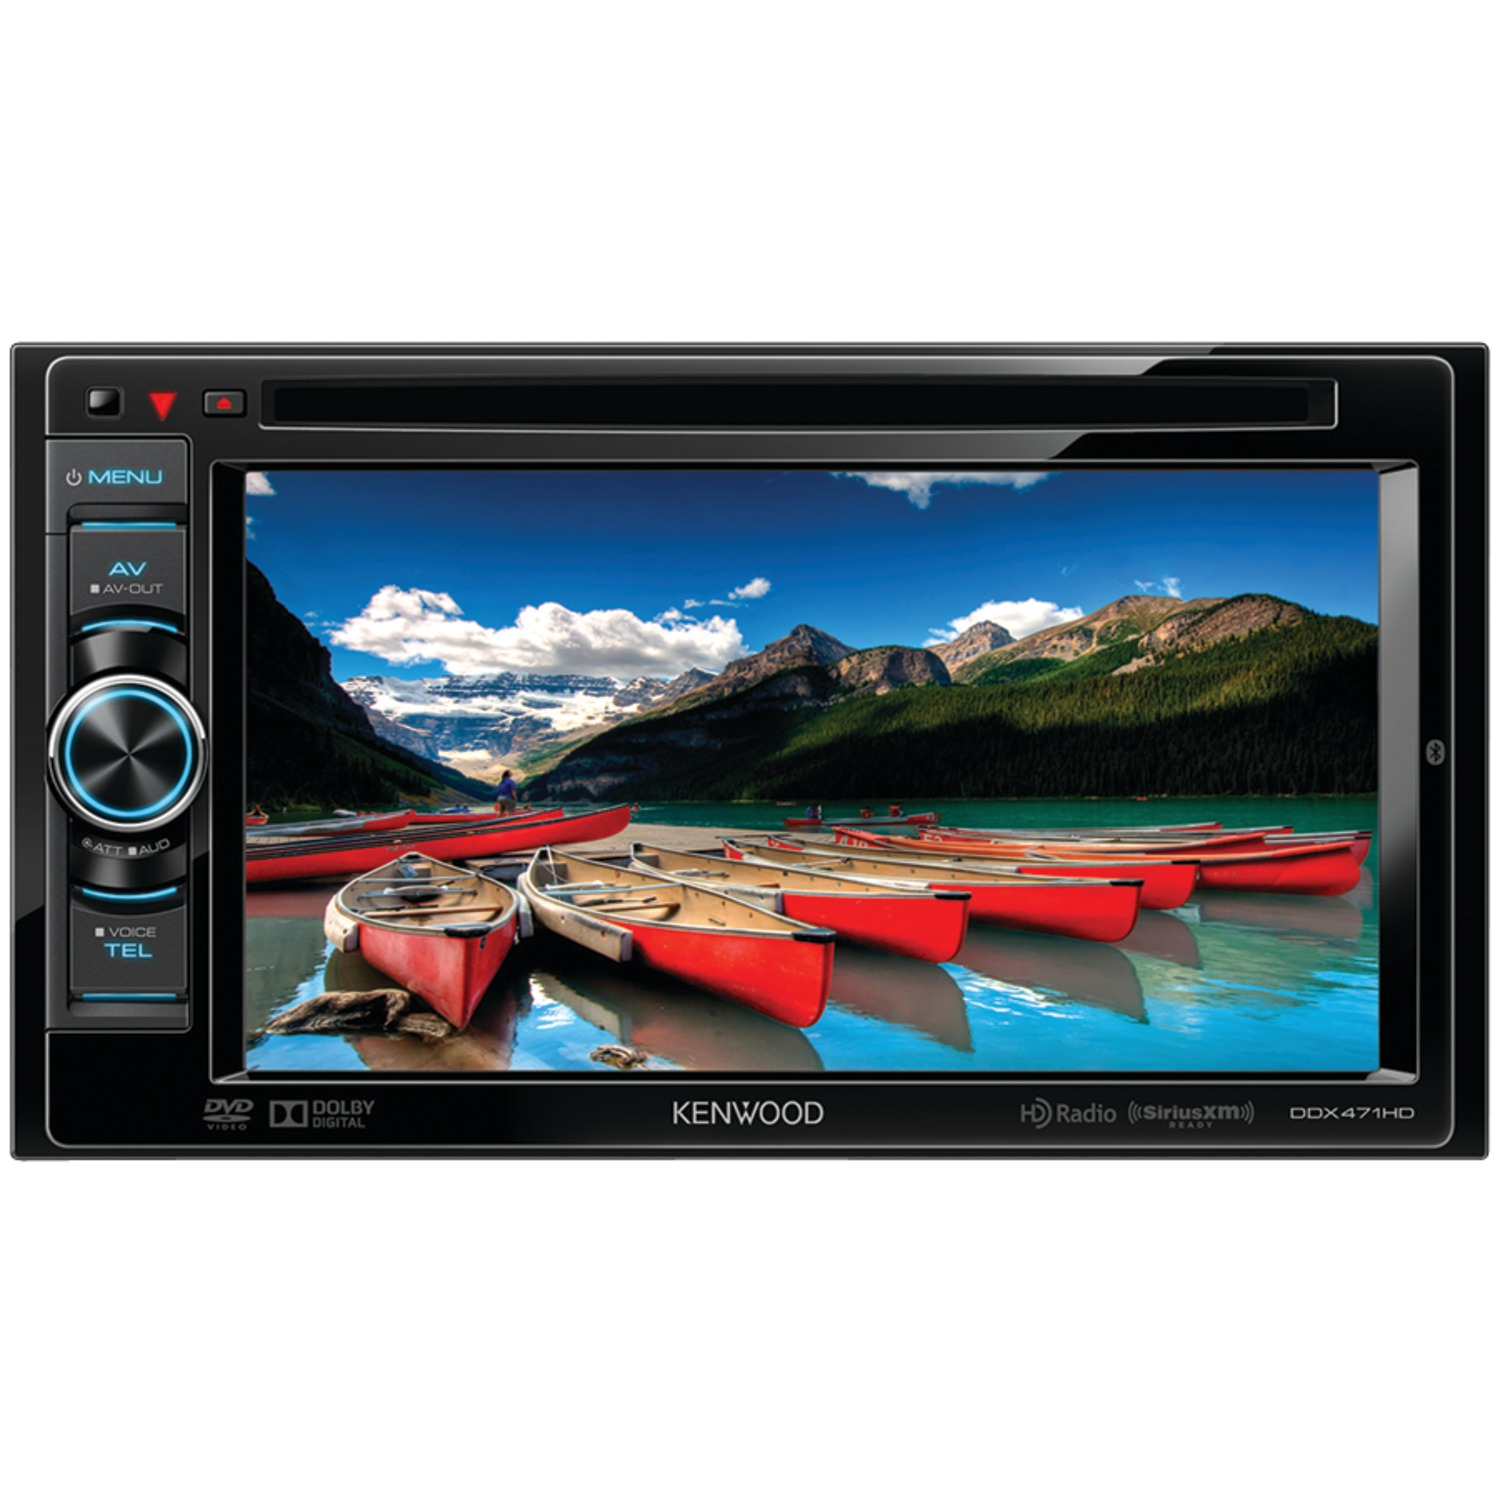 Kenwood Double Din 6.1' Monitor Player Built in Bluetooth HD Radio New DDX471HD by Kenwood